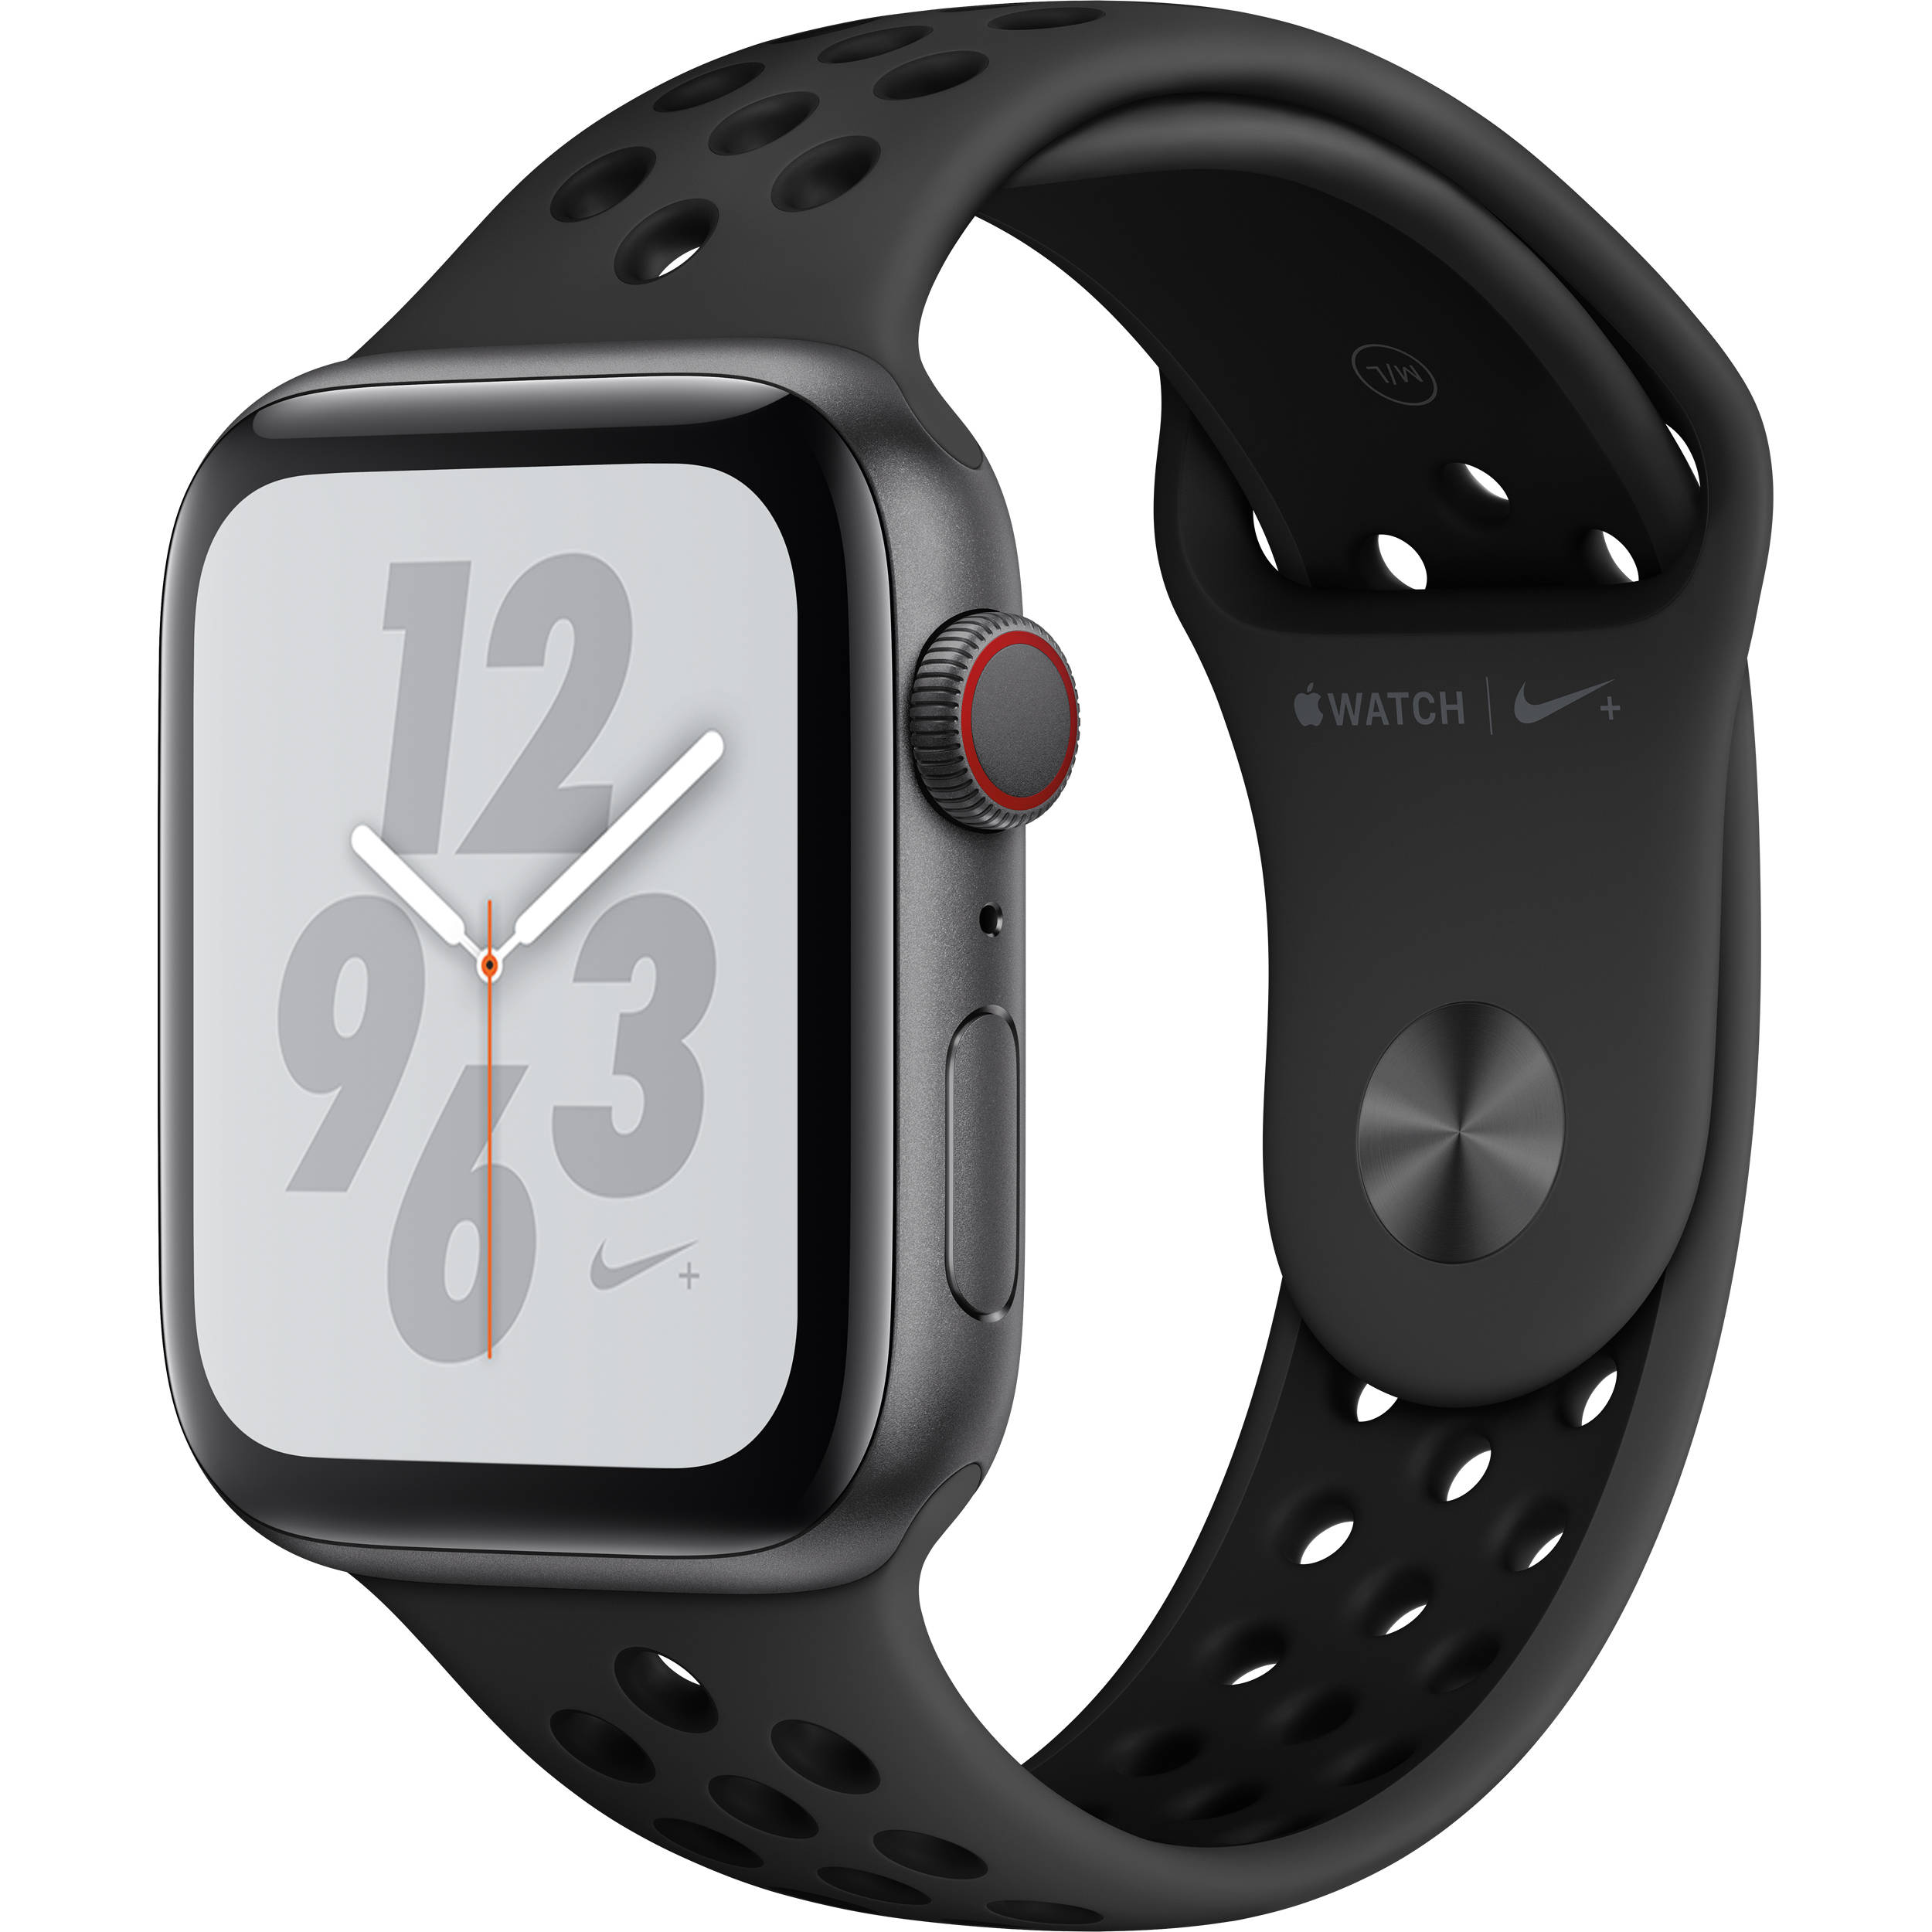 separation shoes 79599 3fd6d Apple Watch Nike+ Series 4 (GPS + Cellular, 44mm, Space Gray Aluminum,  Anthracite/Black Nike Sport Band)